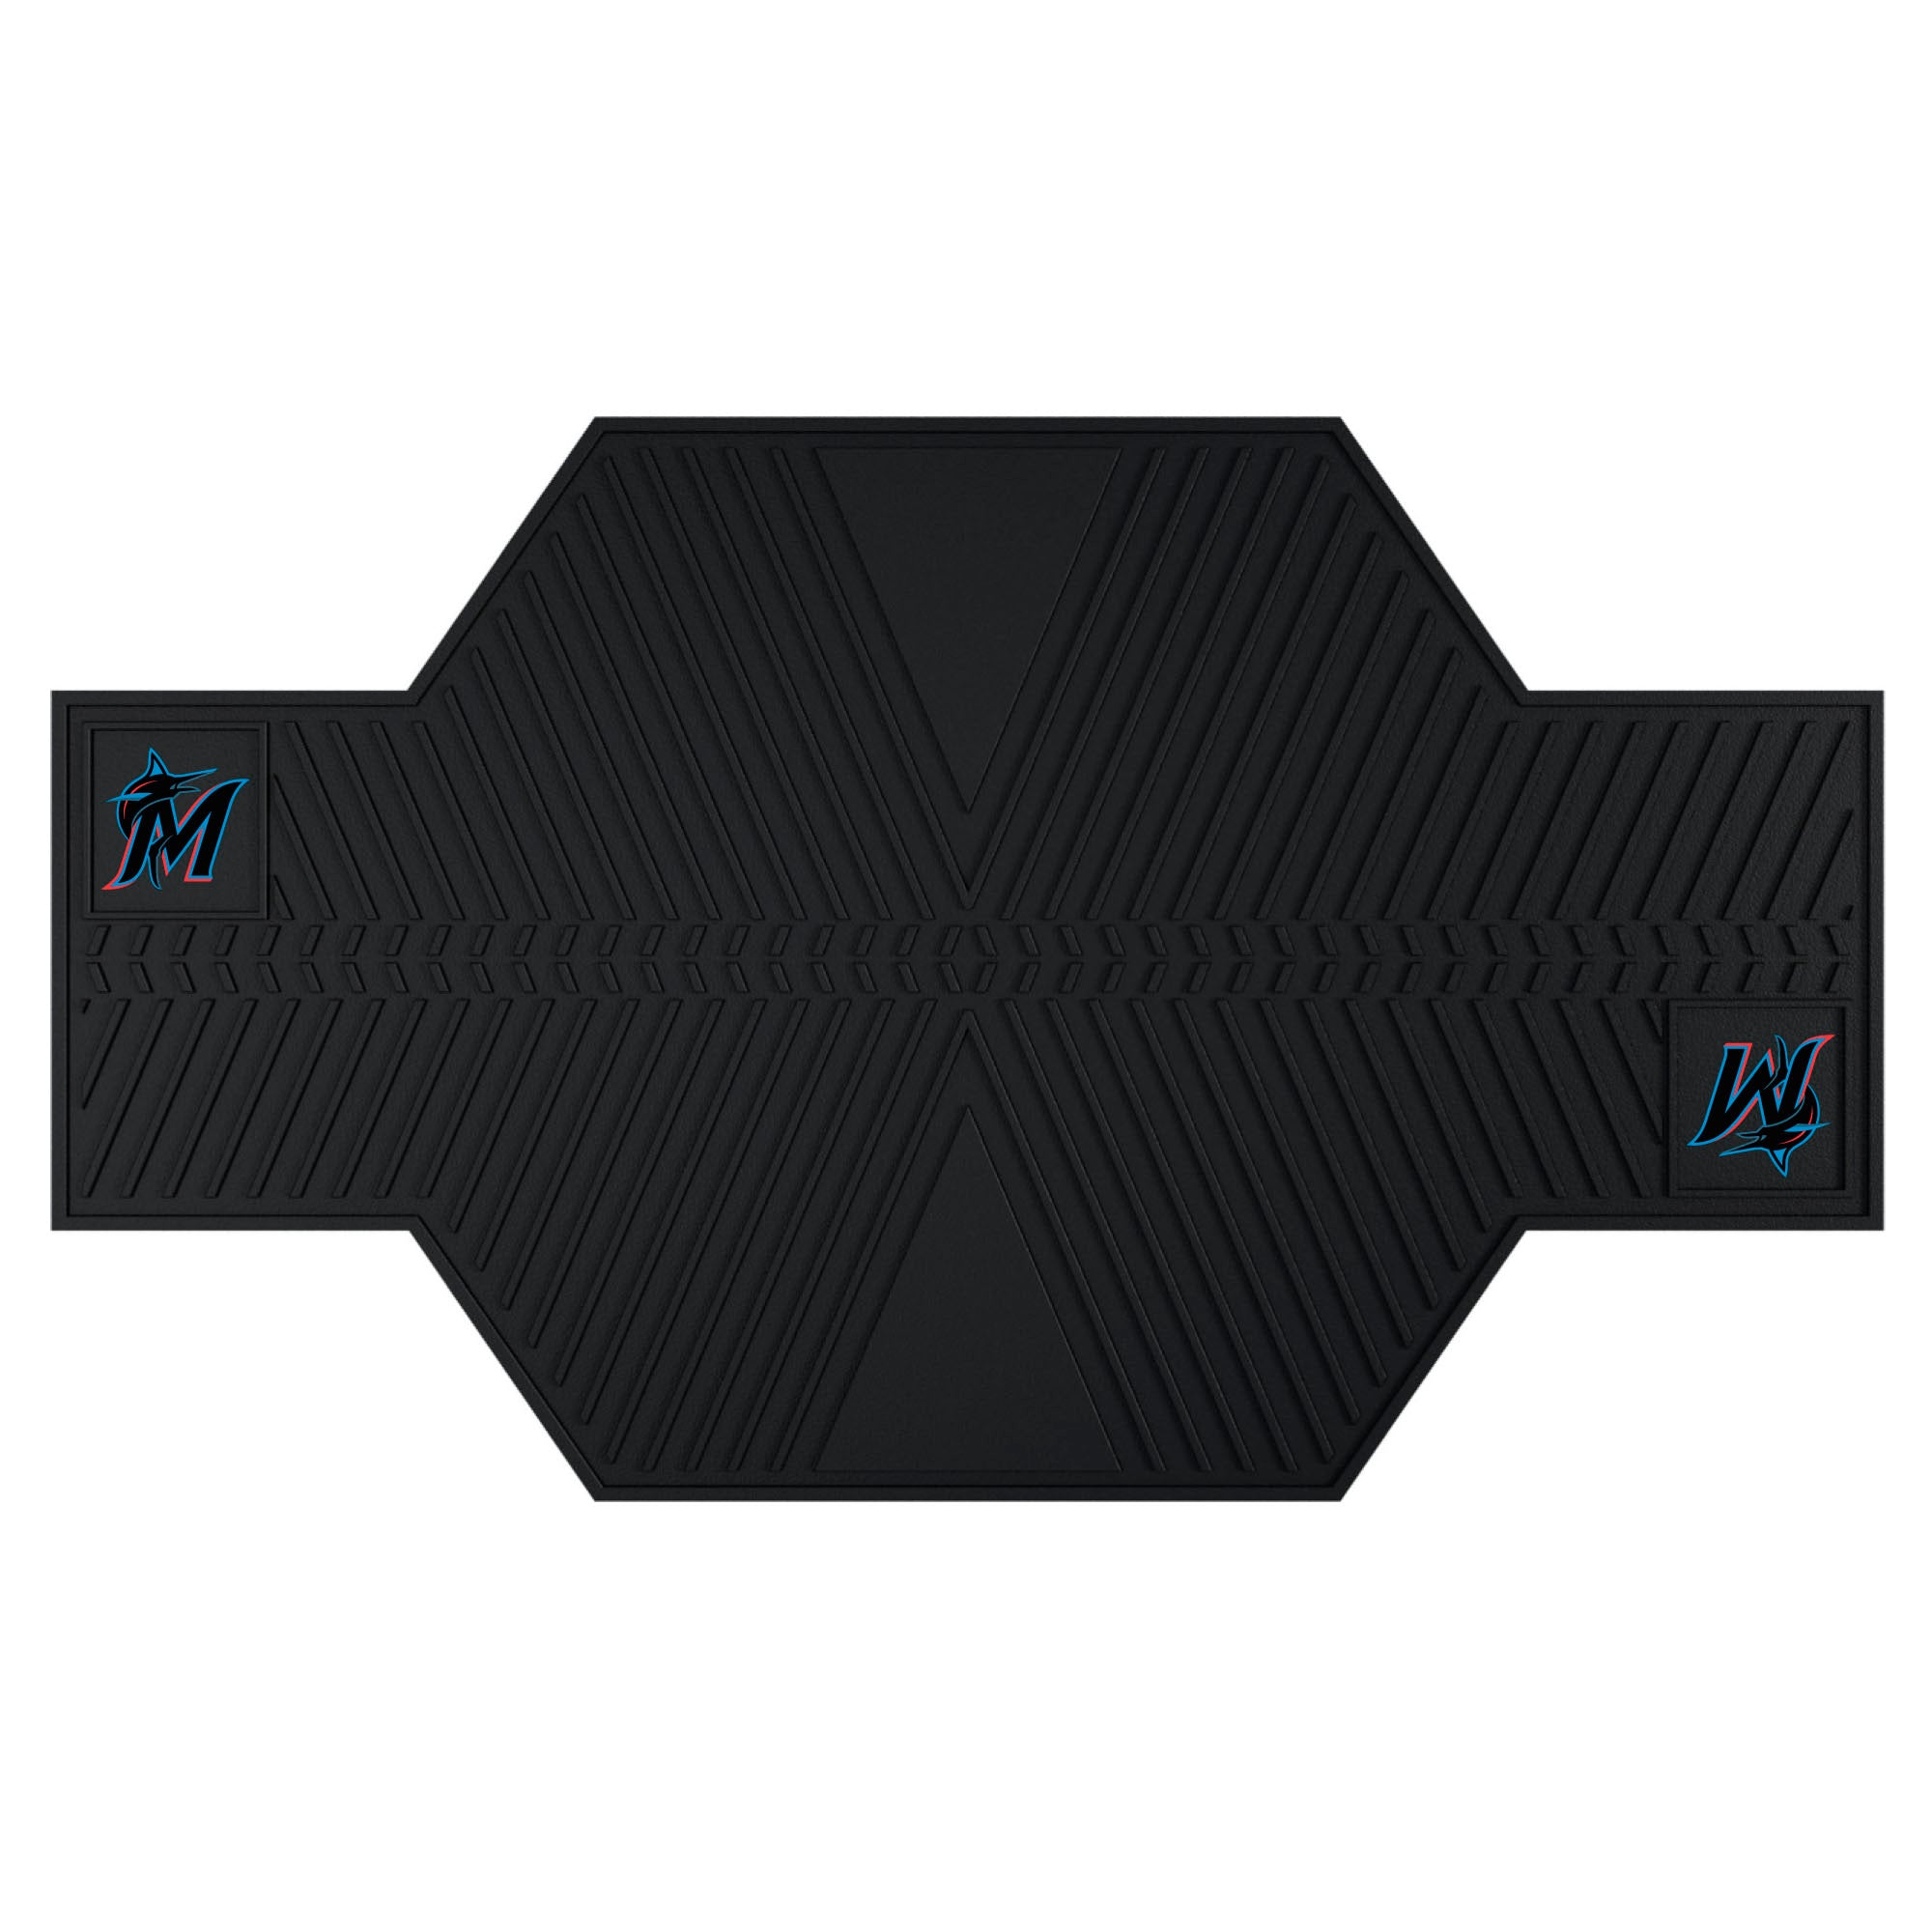 "MLB - Miami Marlins Motorcycle Mat 82.5""x42"""